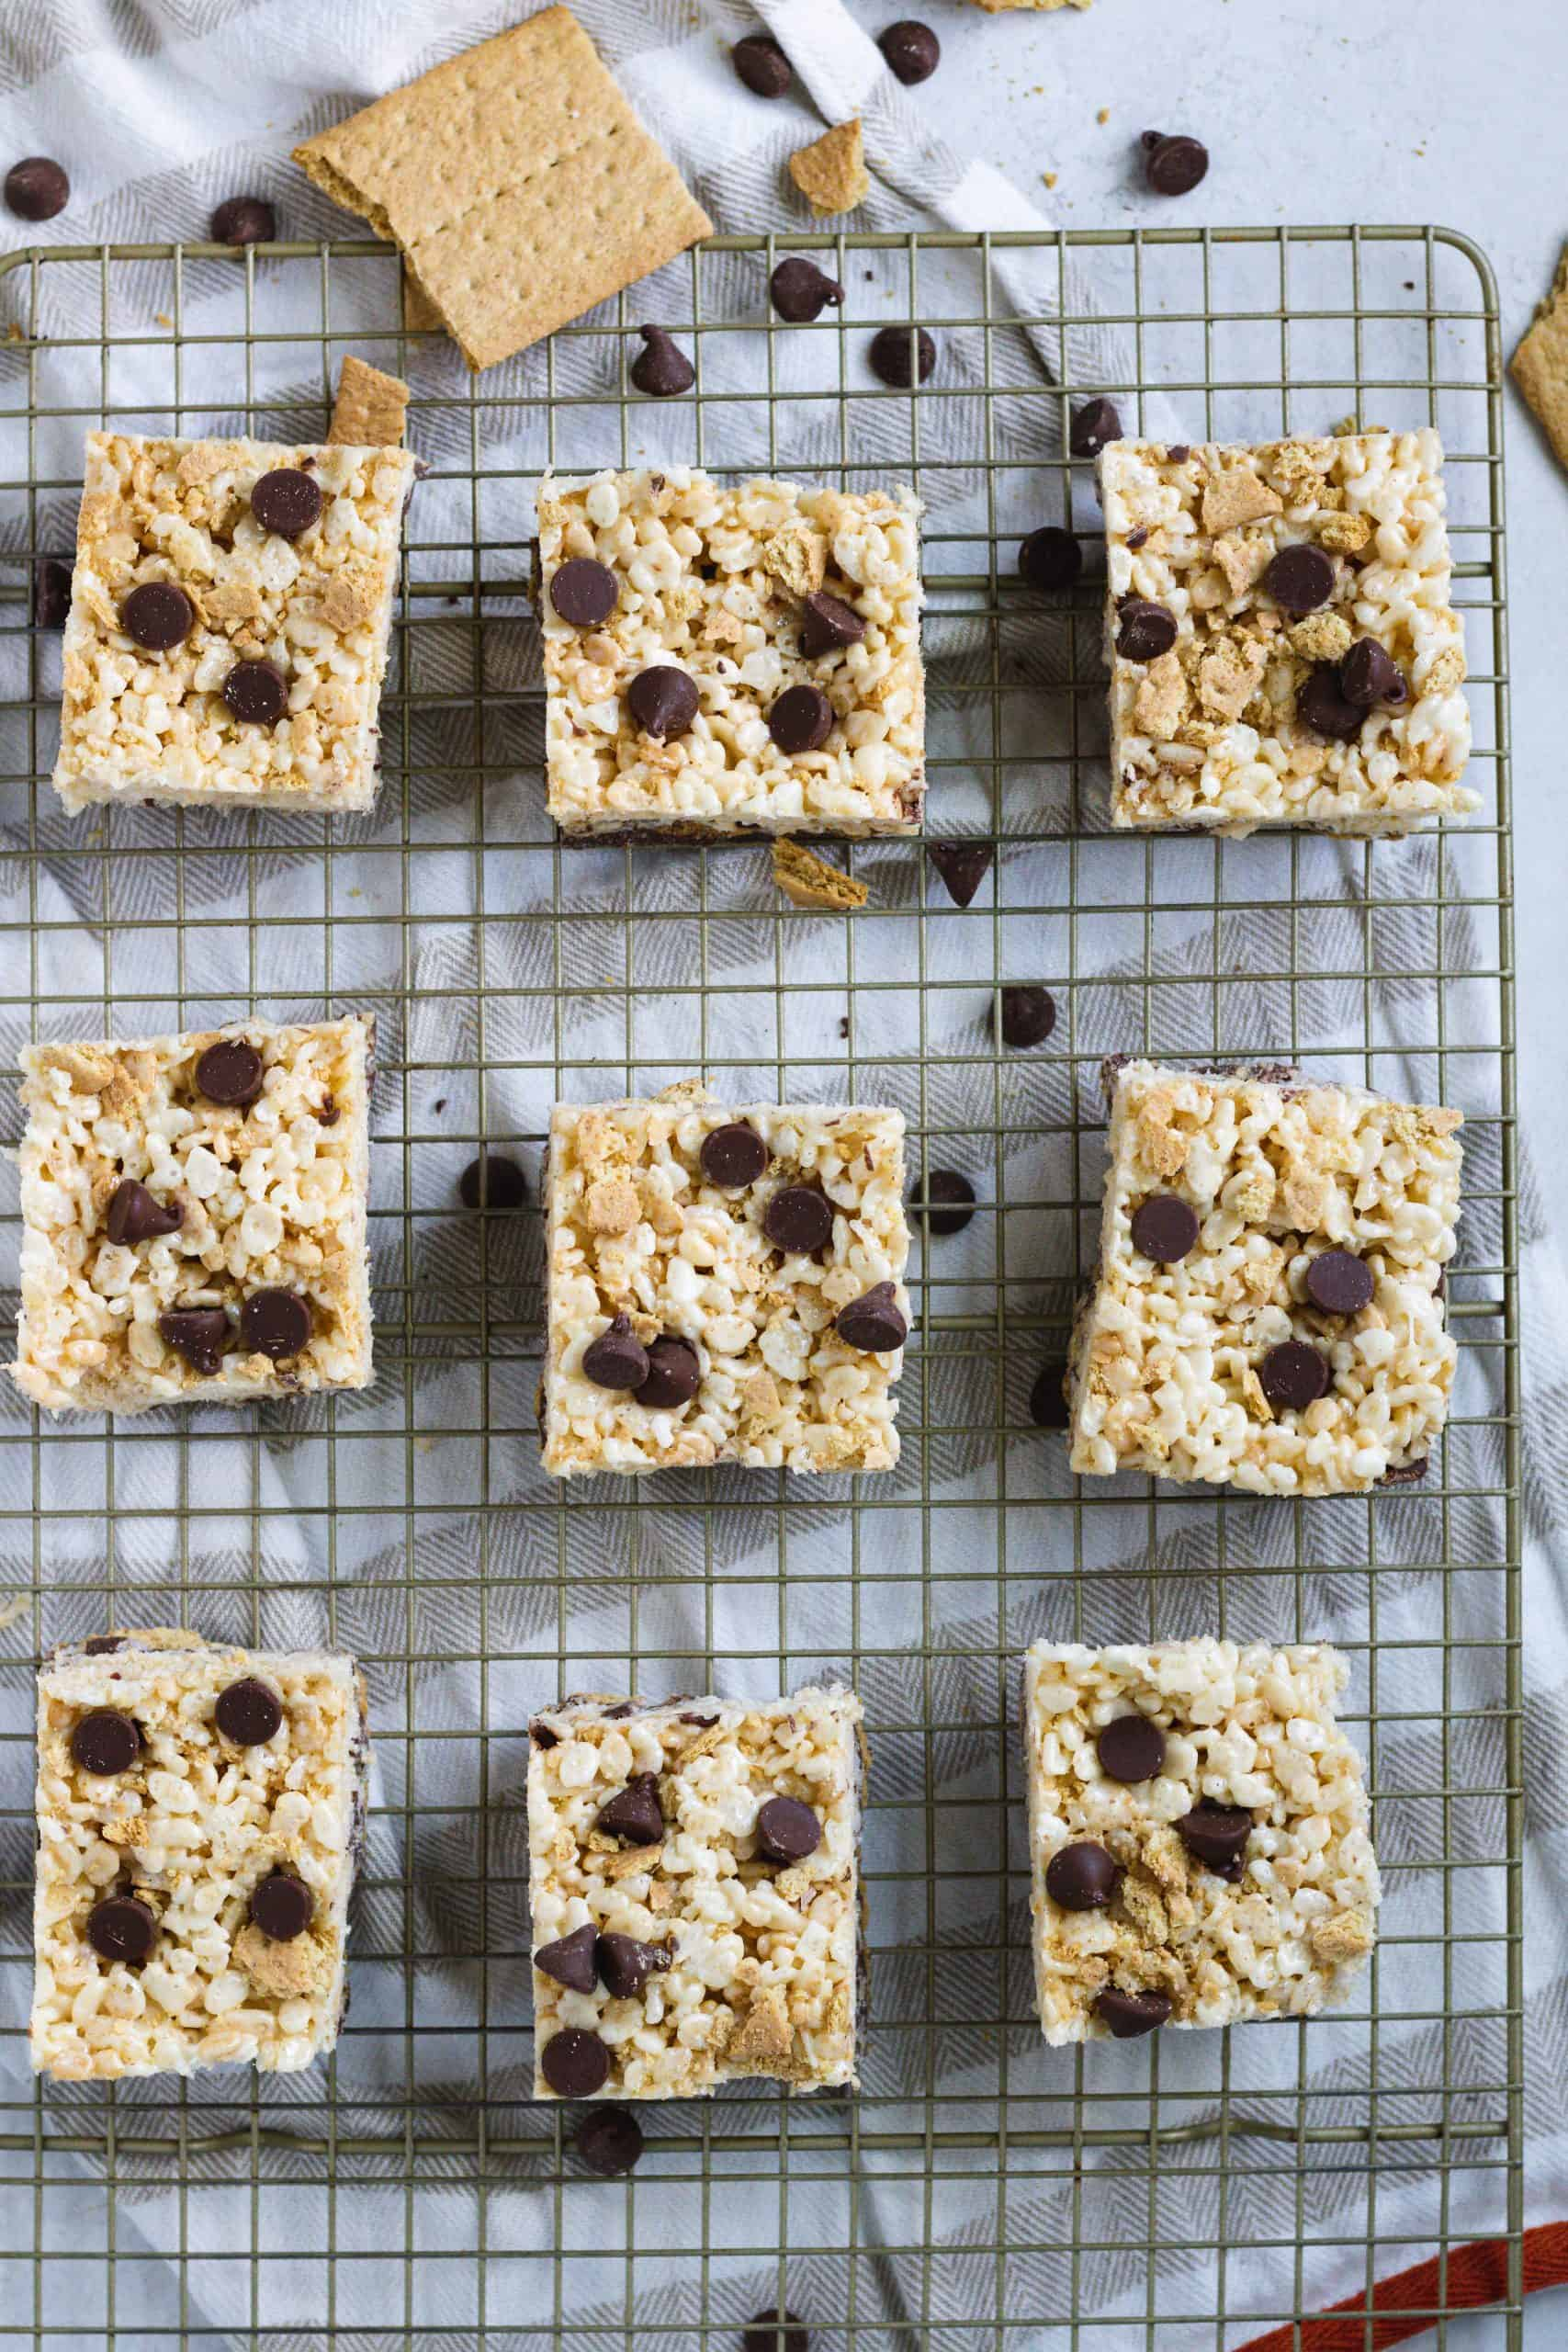 Baking rack with rice krispies, chocolate chips and graham cracker over kitchen towel